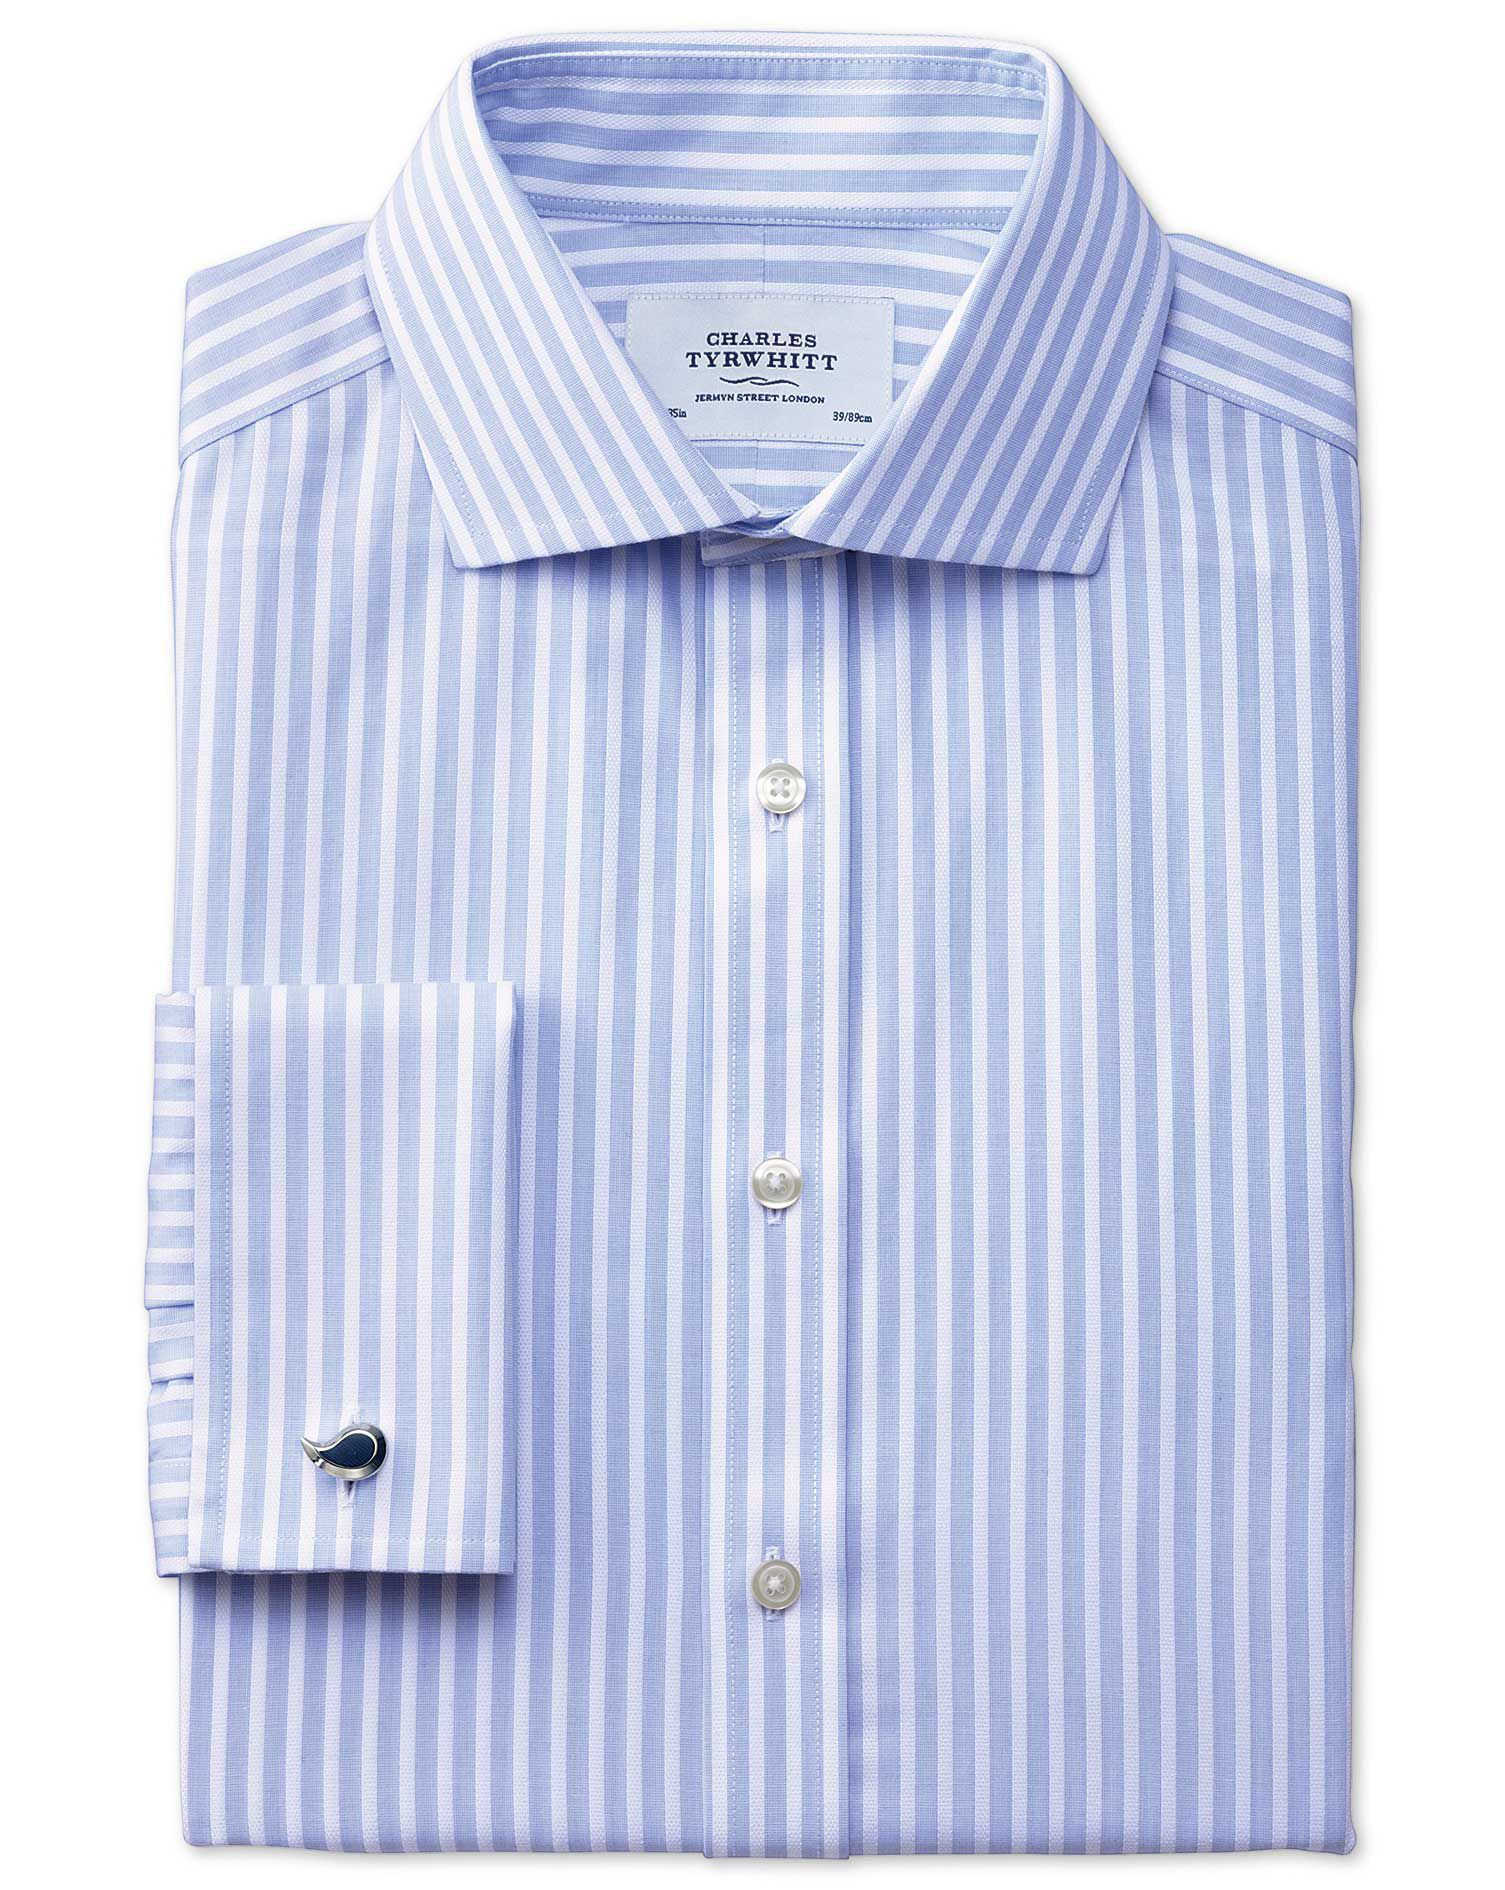 Extra Slim Fit Cutaway Collar Non-Iron Stripe White and Sky Blue Cotton Formal Shirt Double Cuff Siz